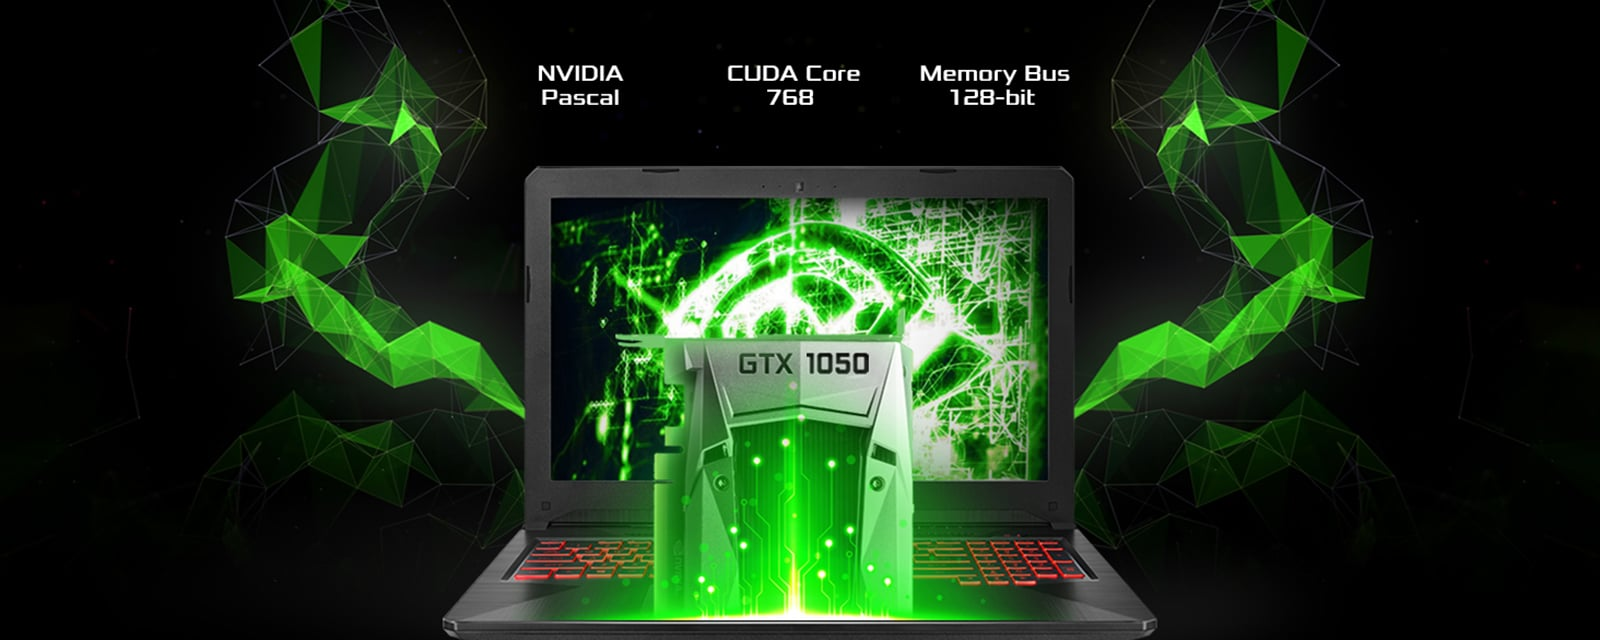 asus tuf fx504gd-nh51 featured